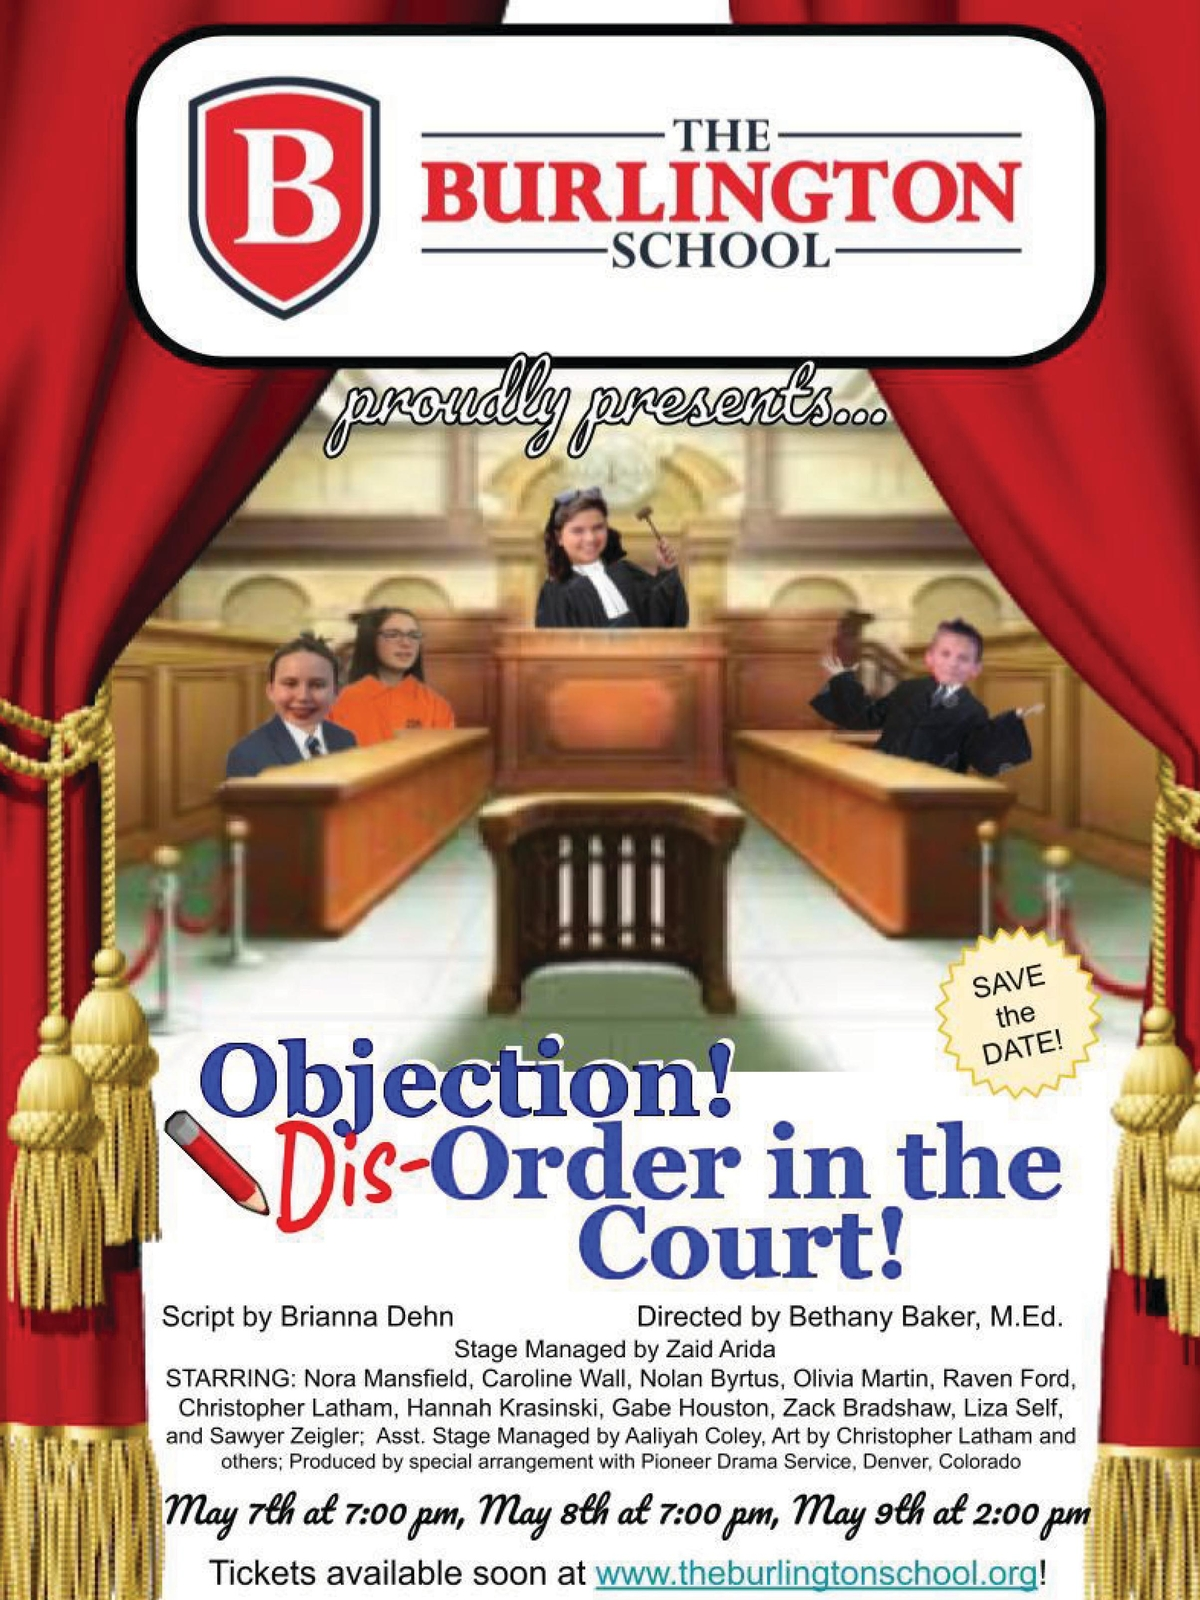 Promotional poster for Objection! Disorder in the Court